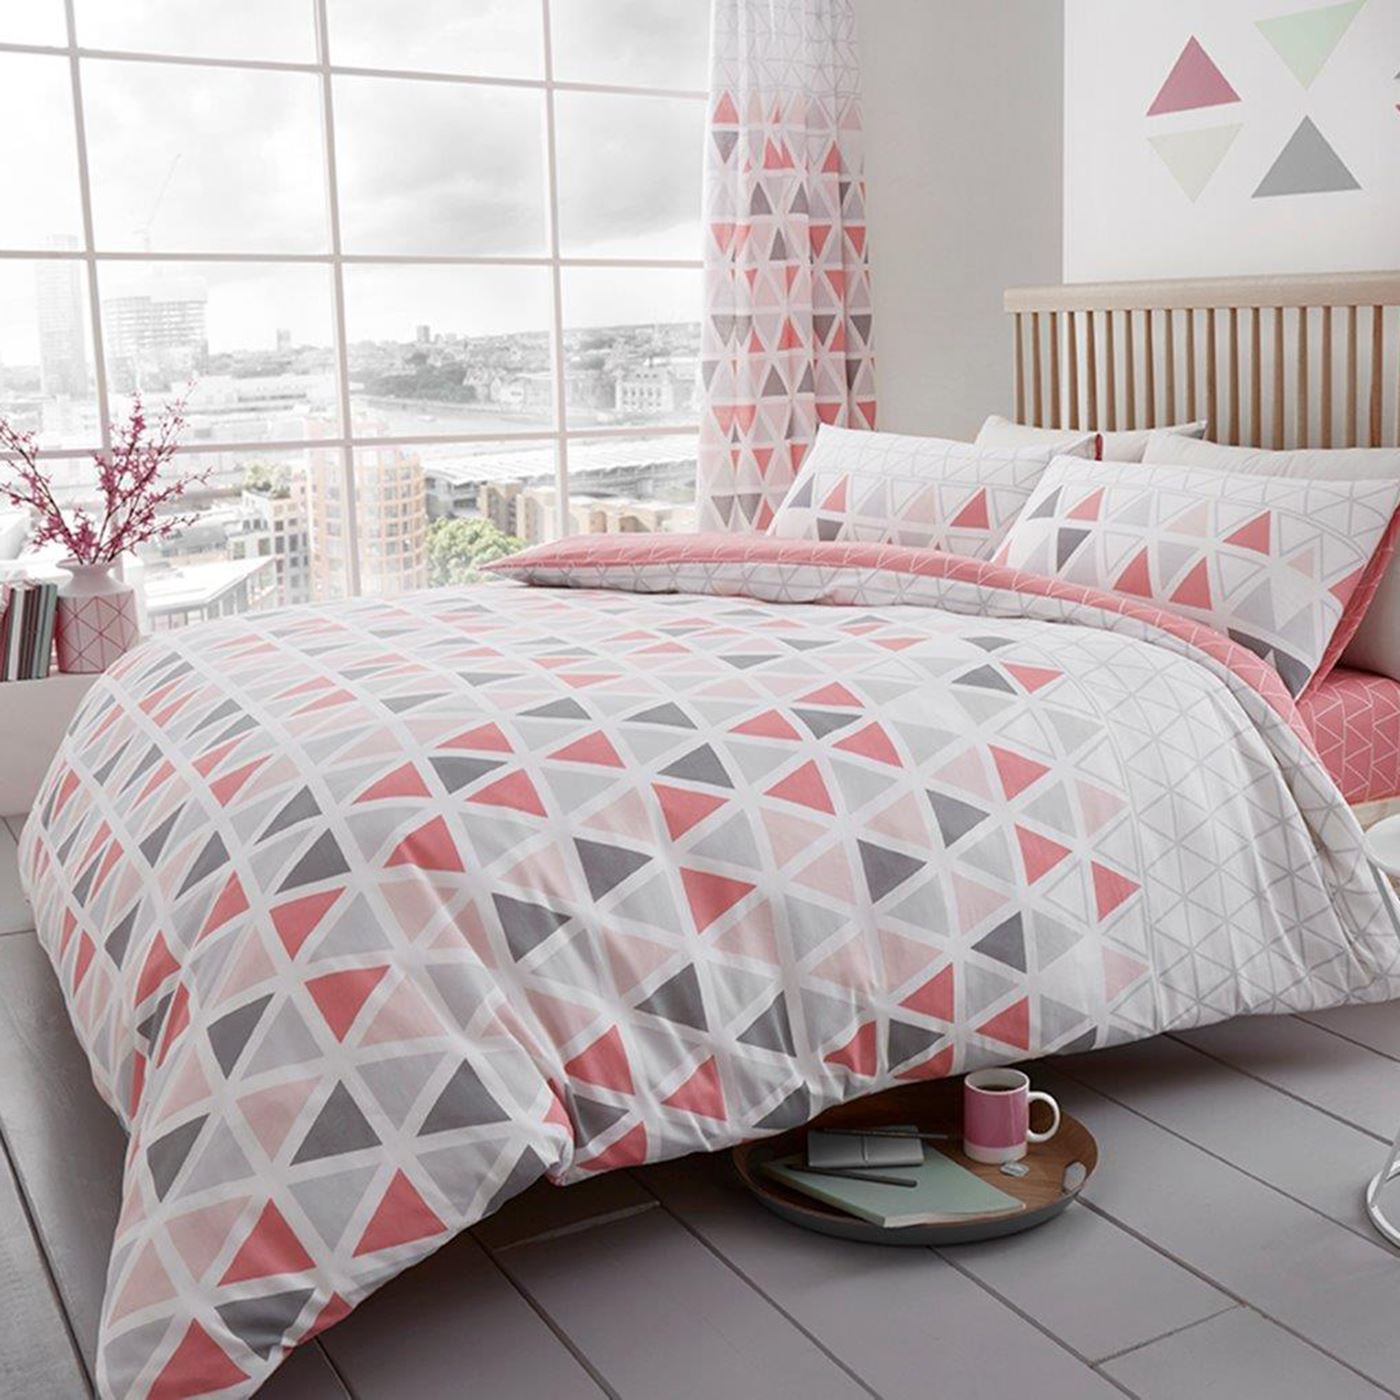 Details About Geo Triangle Duvet Cover Set Bedding Teal Pink Grey Single Double King Size